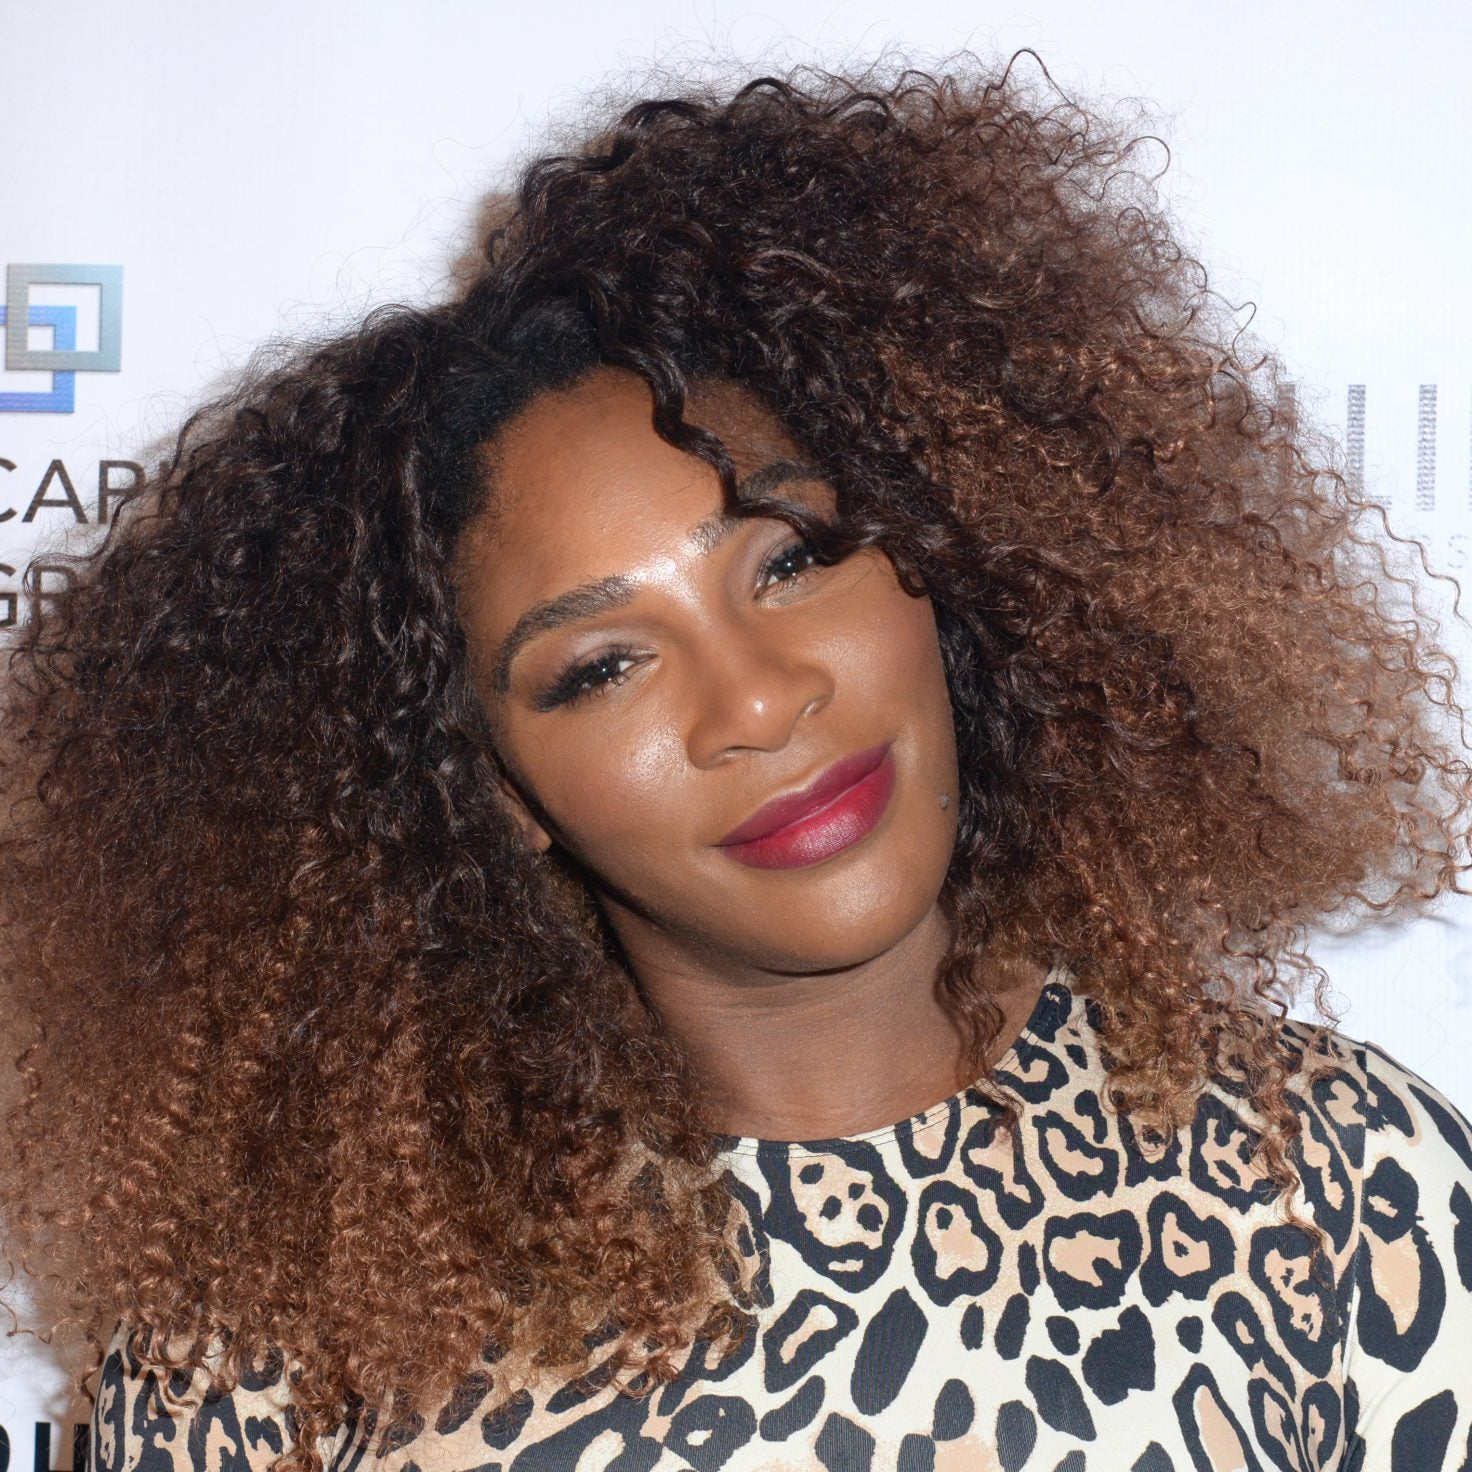 Serena Williams and Her Daughter Olympia Share This Nightly Beauty Routine